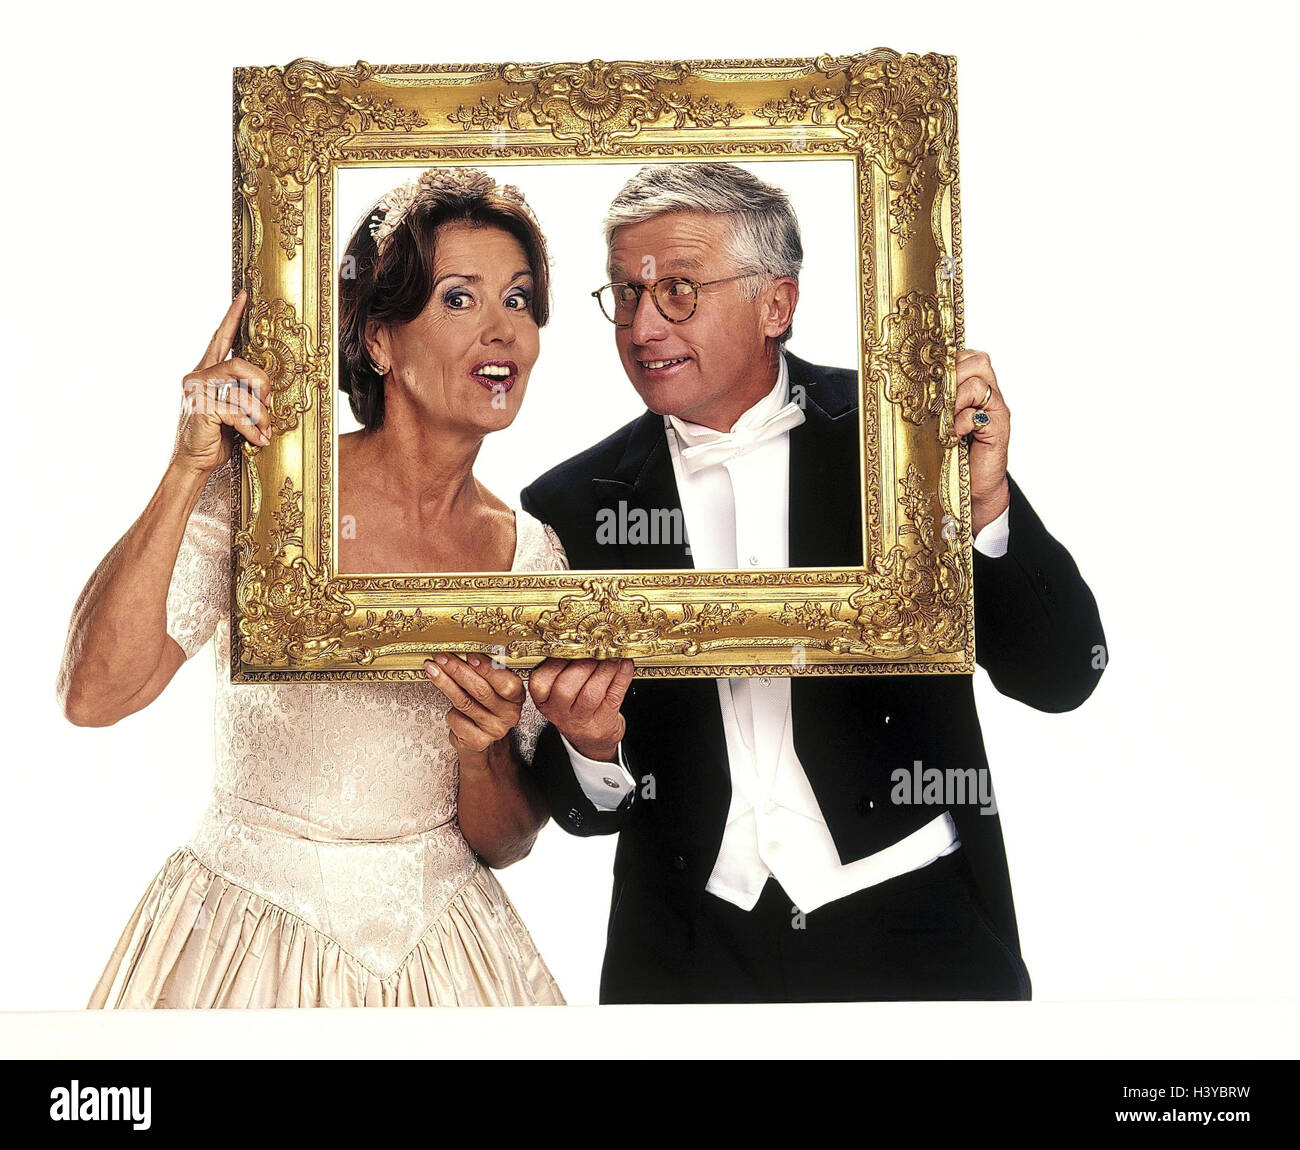 Wedding bride and groom picture frame half portrait marriage wedding bride and groom picture frame half portrait marriage ceremony wedding couple middle old person before bride facial play gesture border jeuxipadfo Choice Image